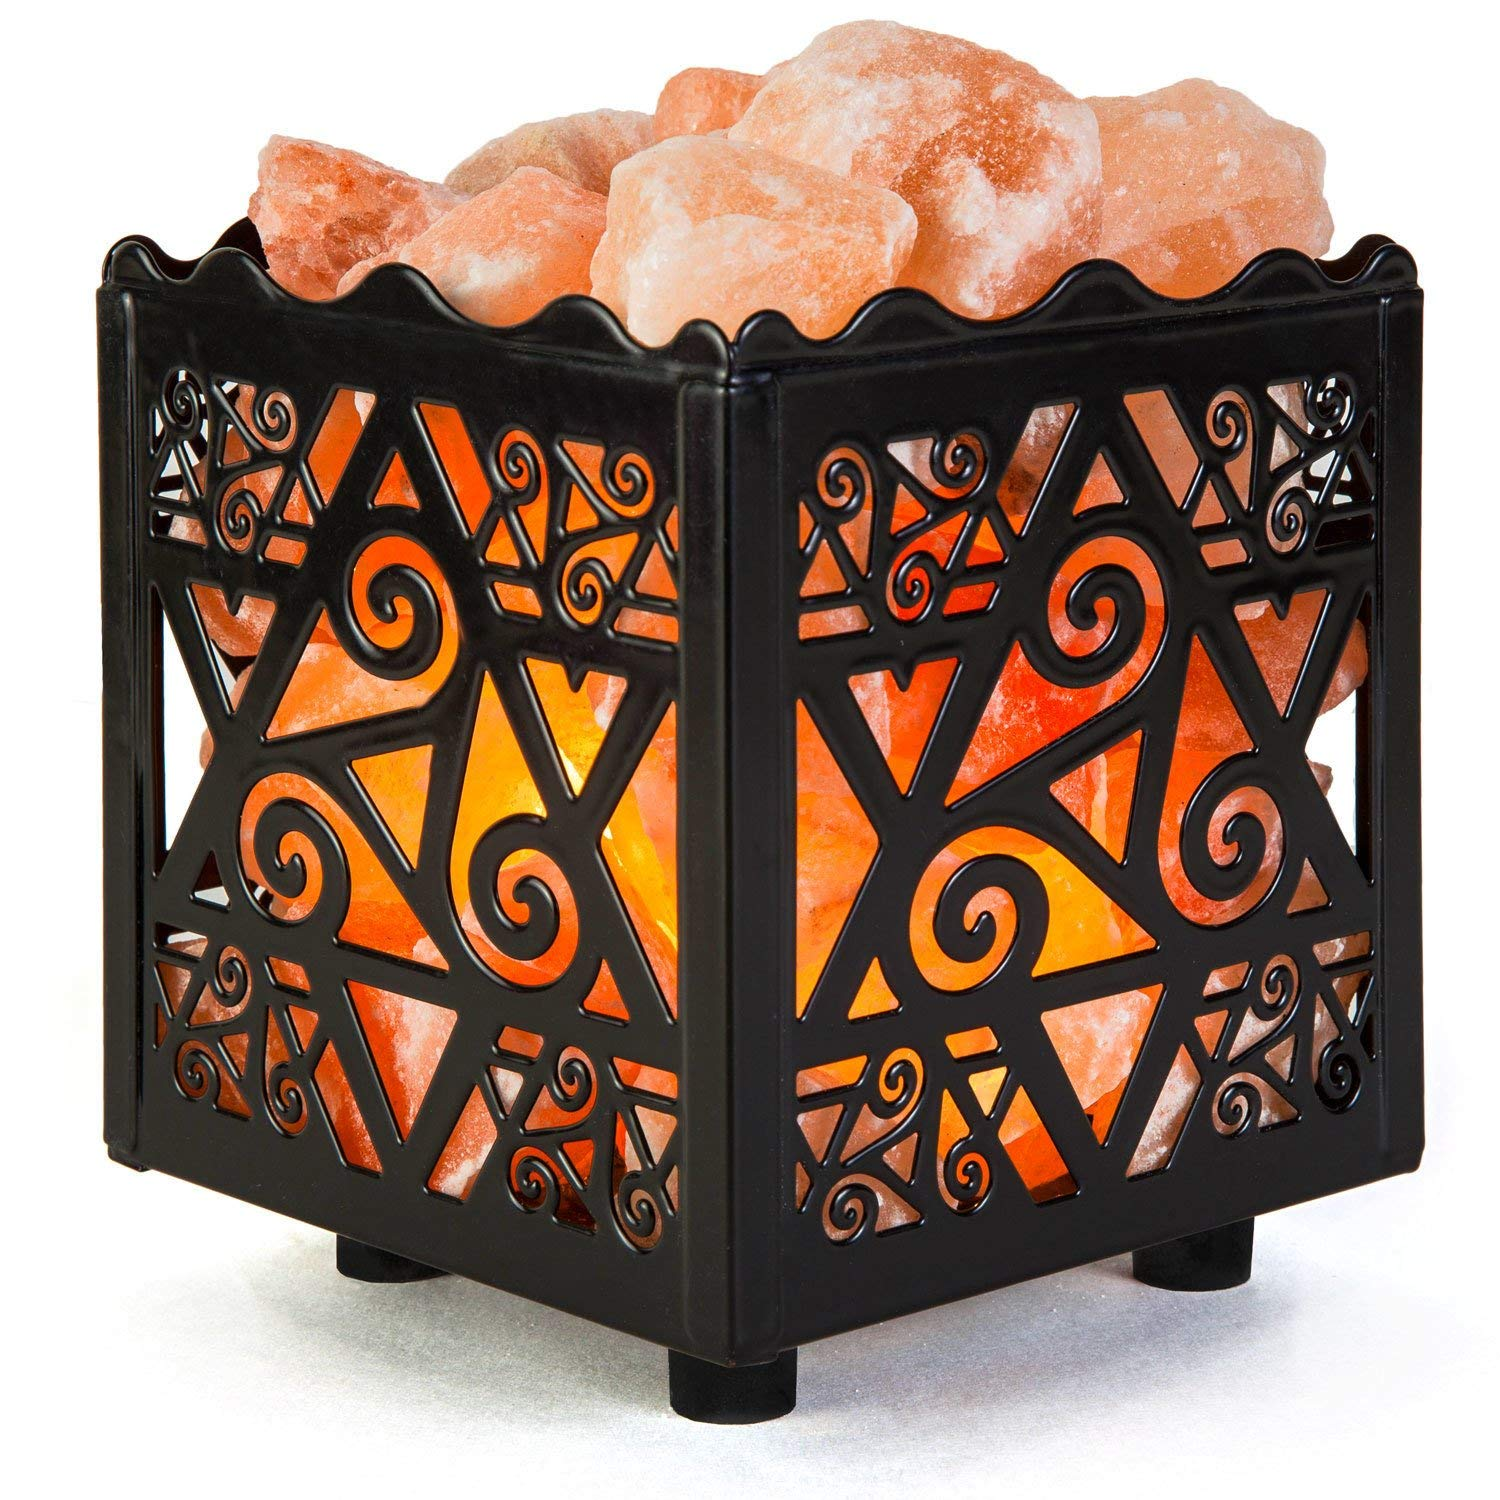 Crystal Decor Natural Himalayan Salt Lamp in Star Design Metal Basket with Dimmable Cord - salt lamp